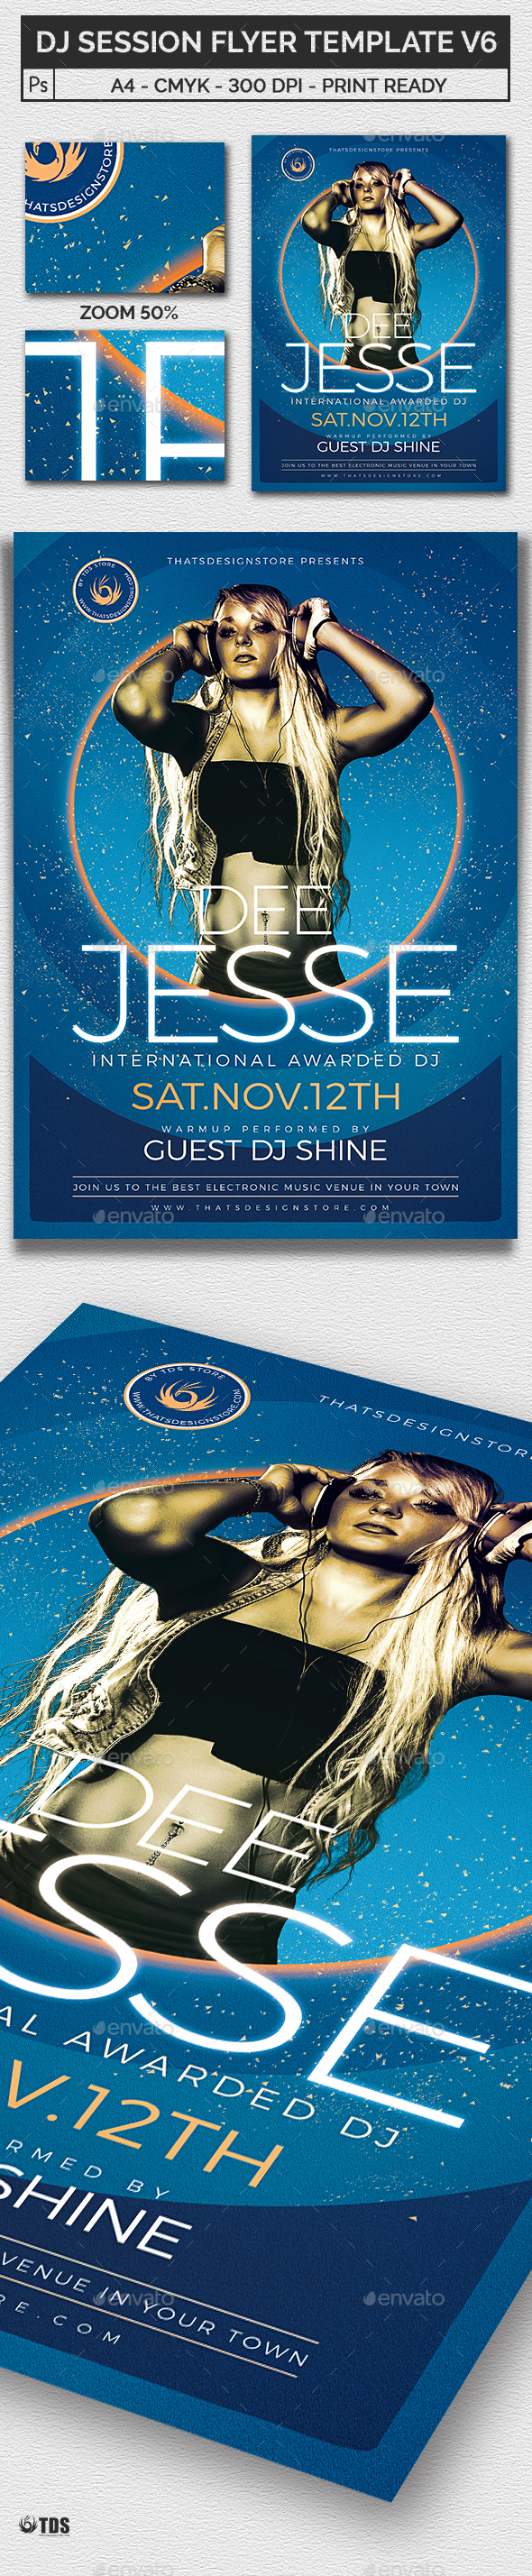 DJ Session Flyer Template V6 - Clubs & Parties Events